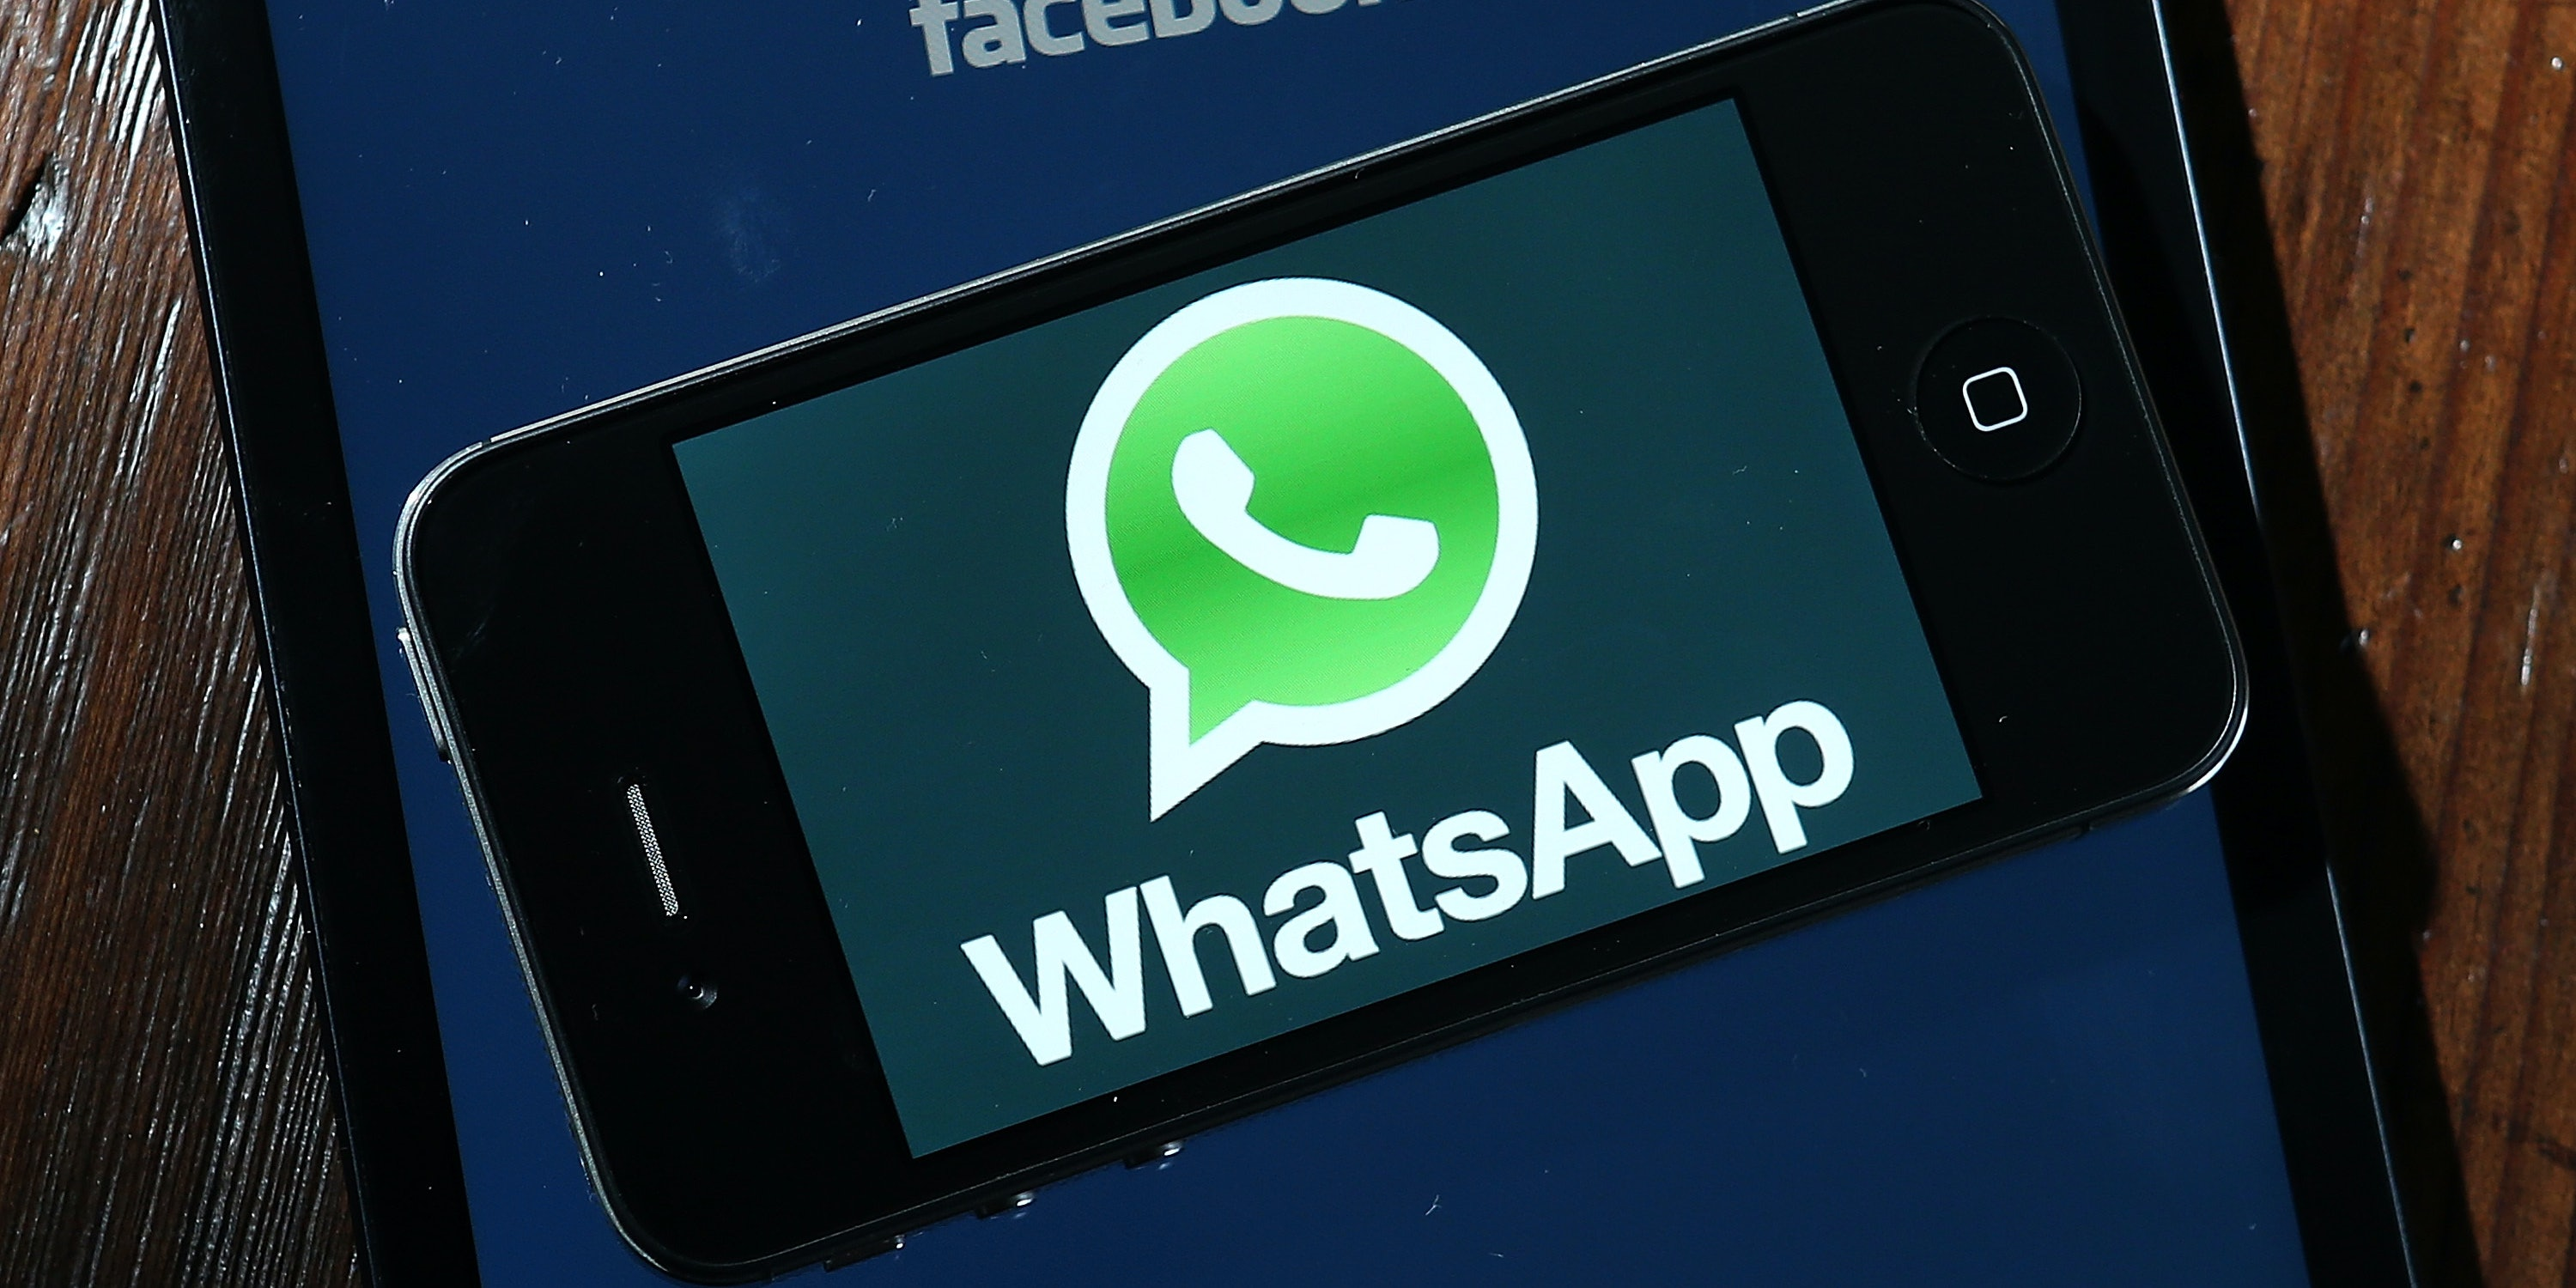 6 Reasons to Switch to WhatsApp Already